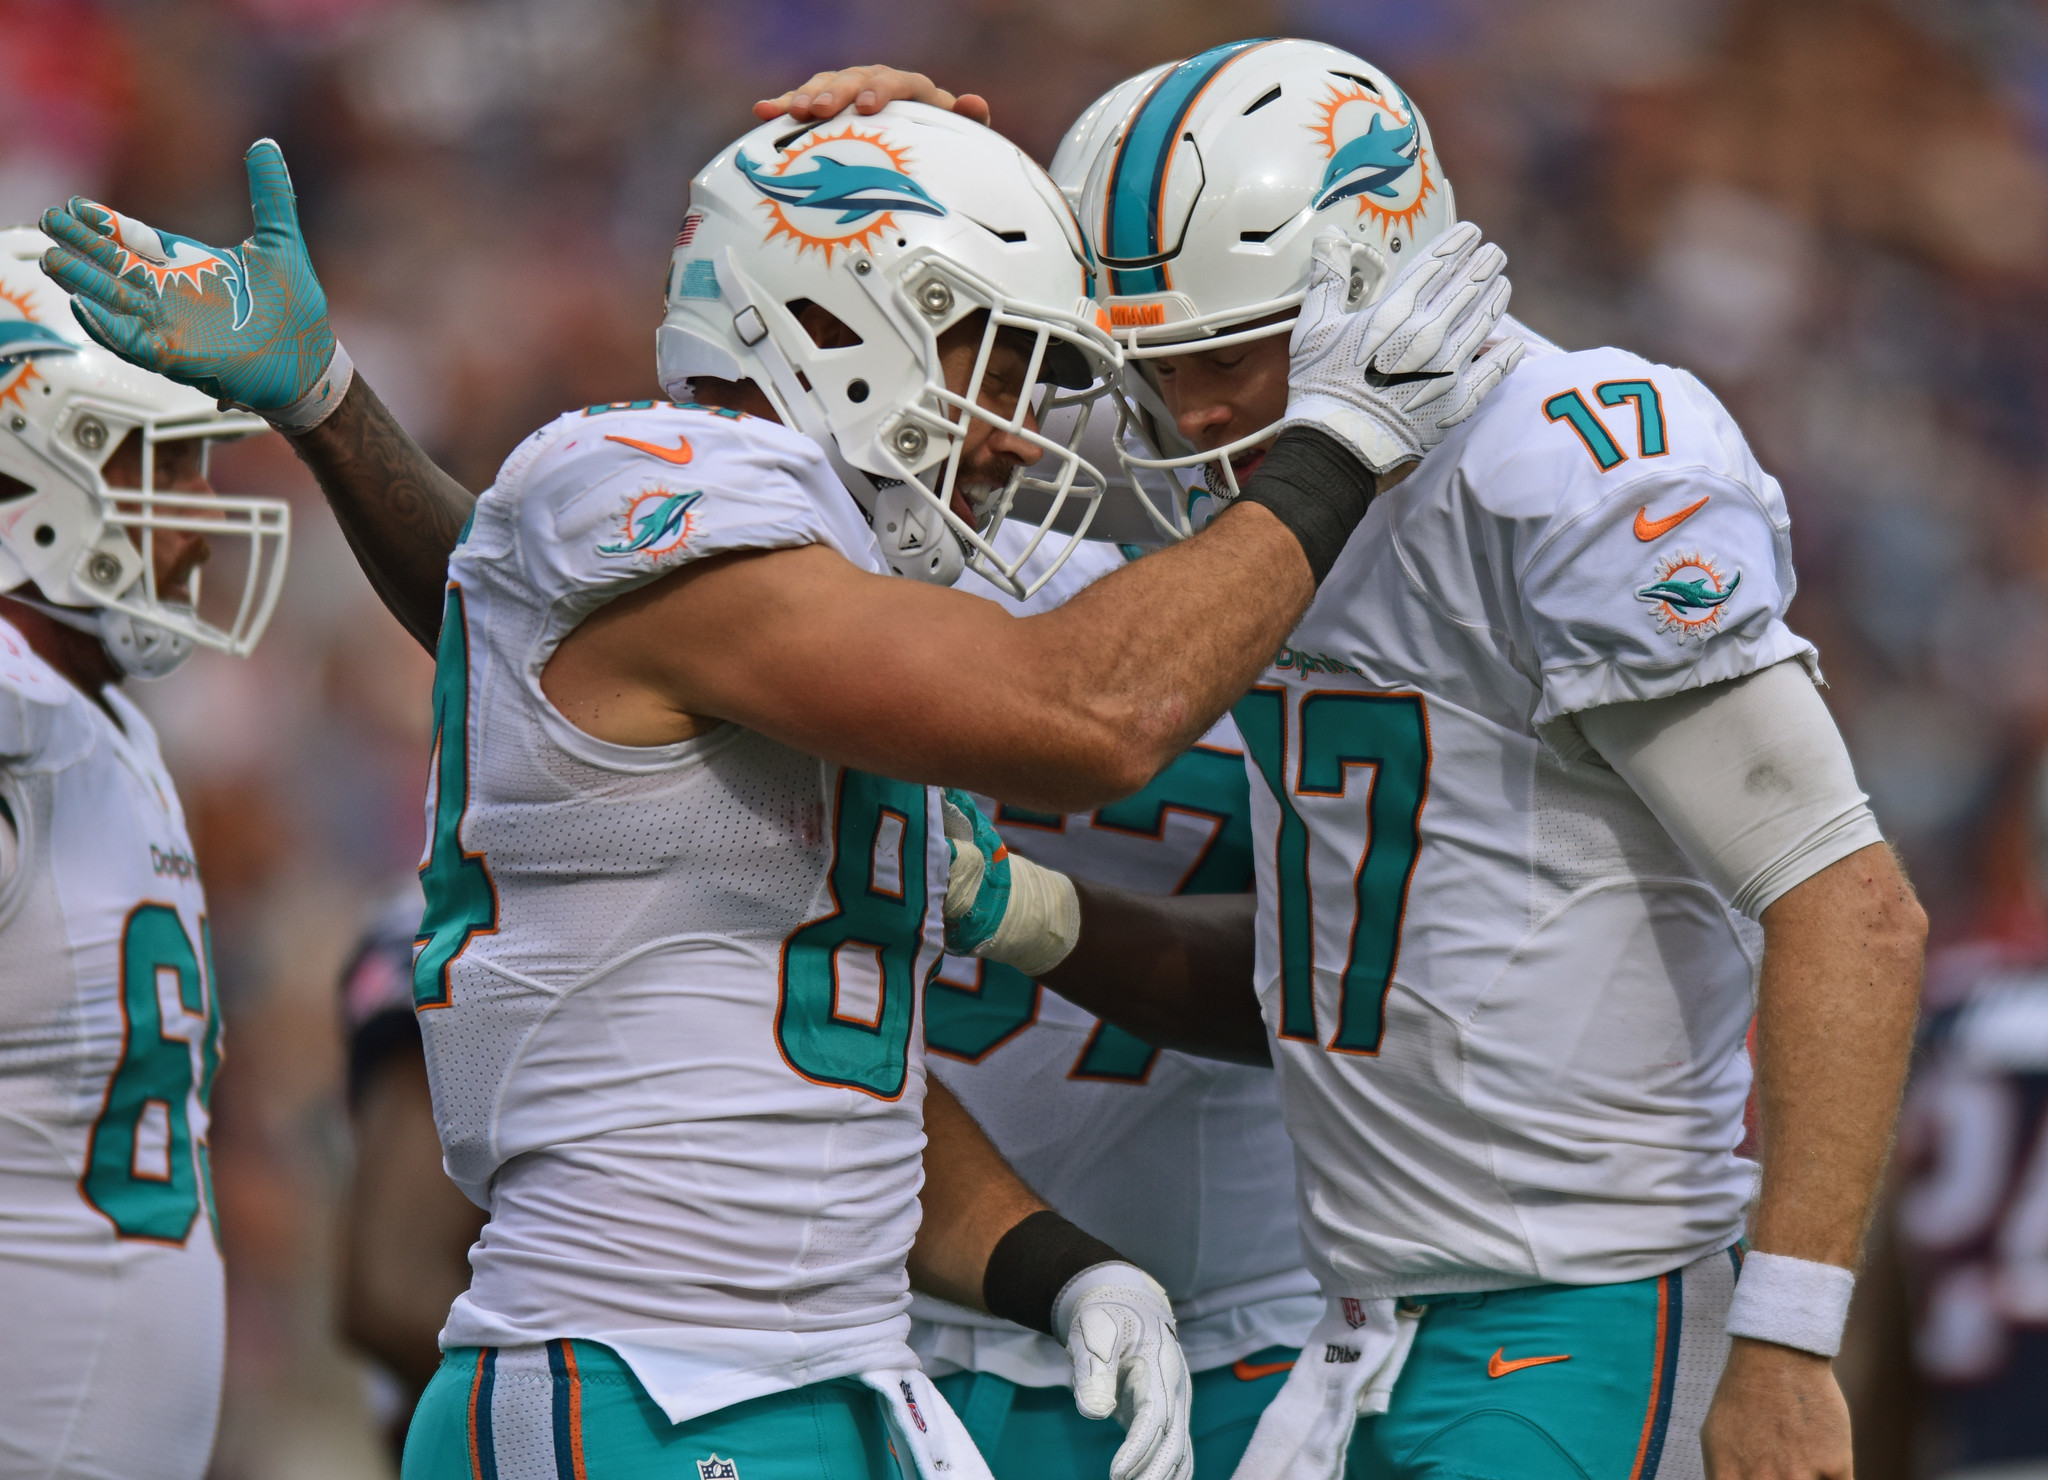 Fl-dolphins-advance-0925-20160924